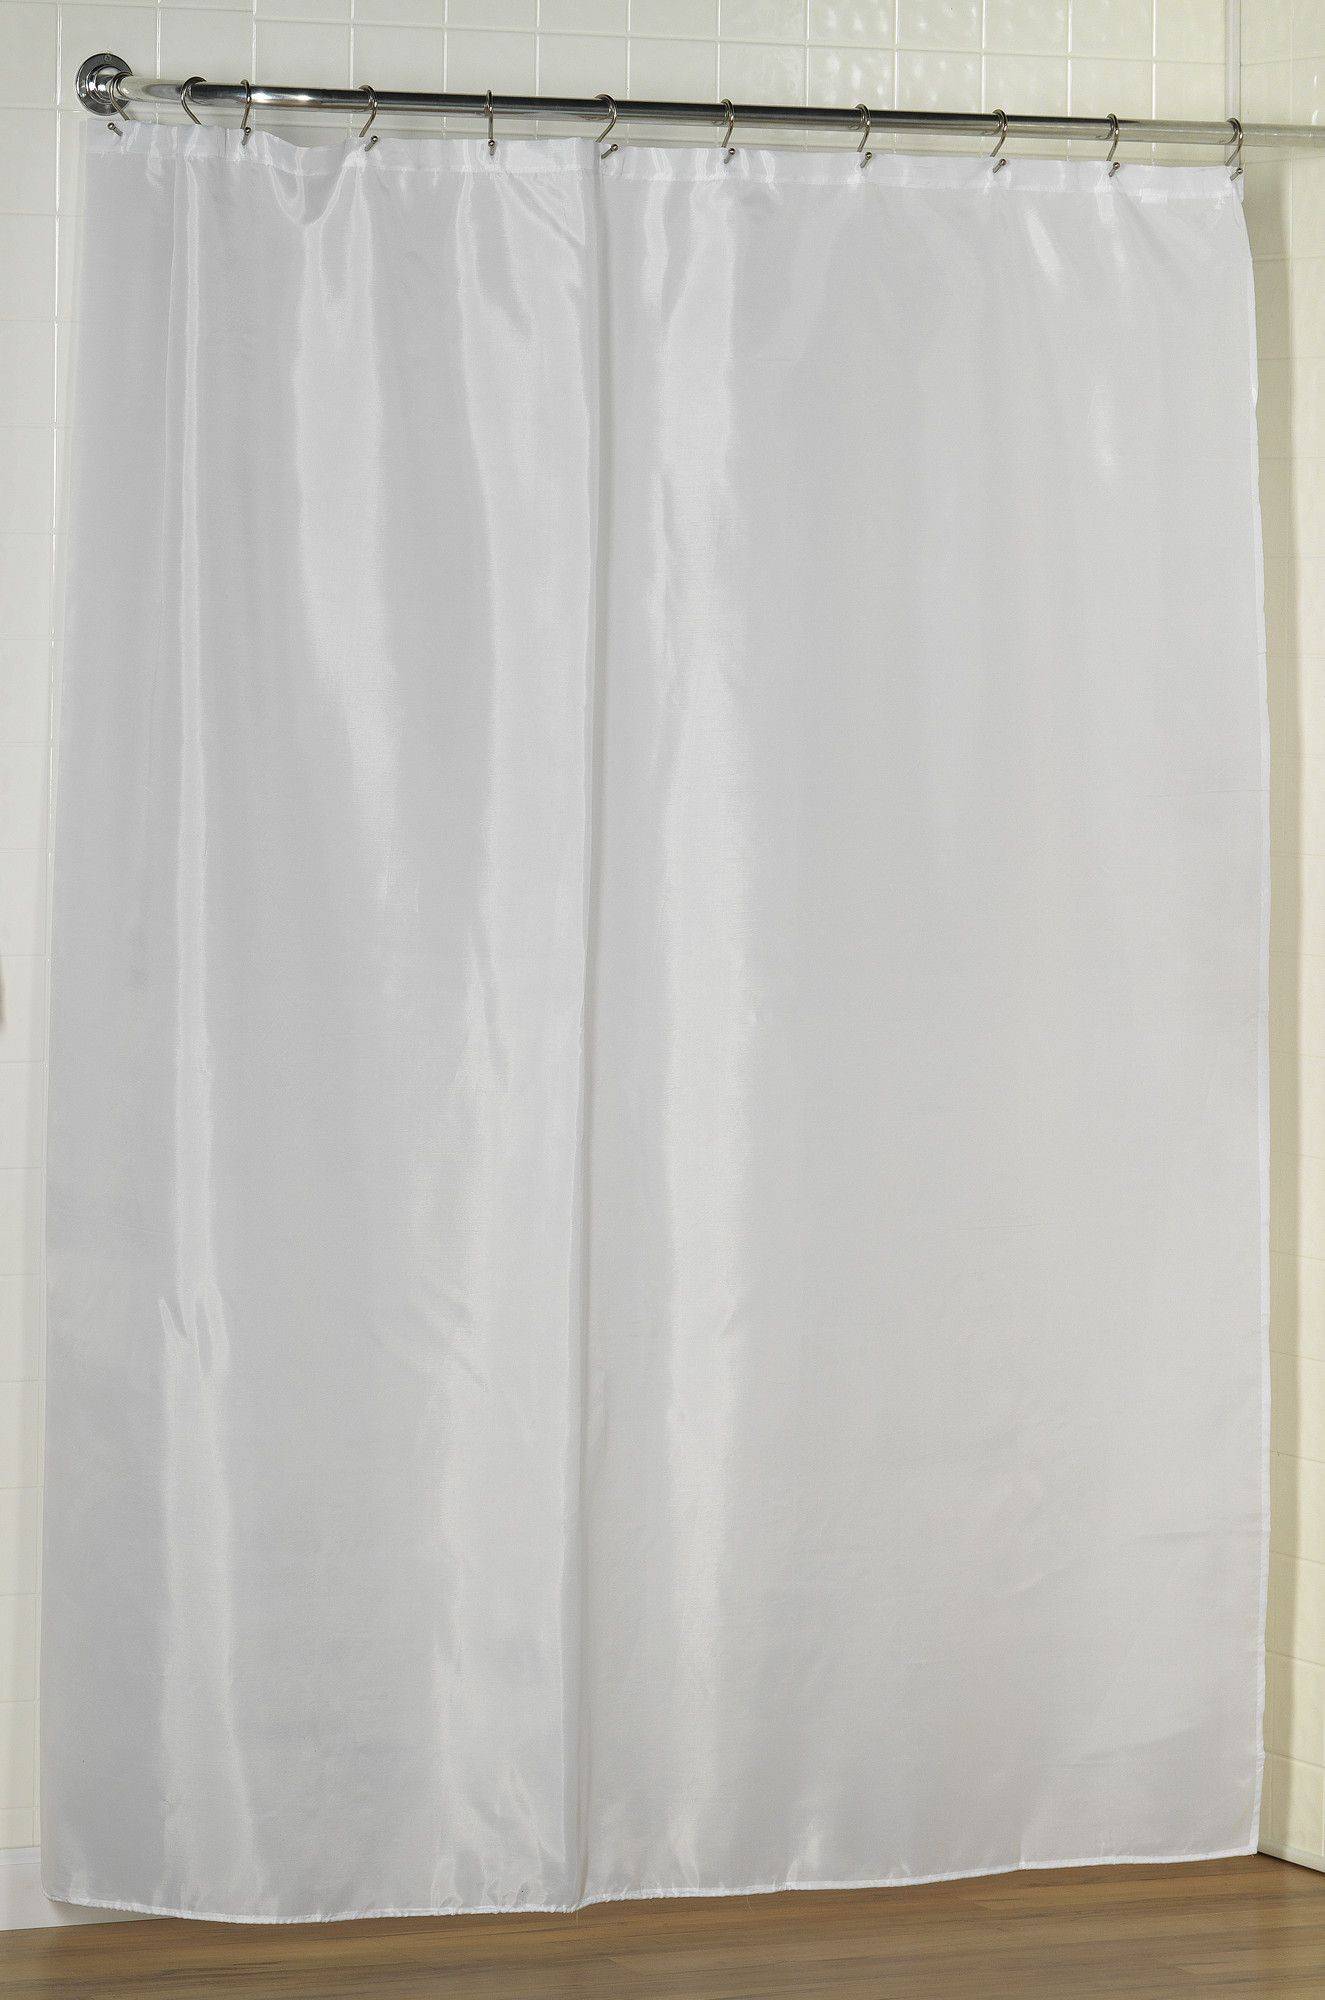 Single Shower Curtain Liner Long Shower Curtains Fabric Shower